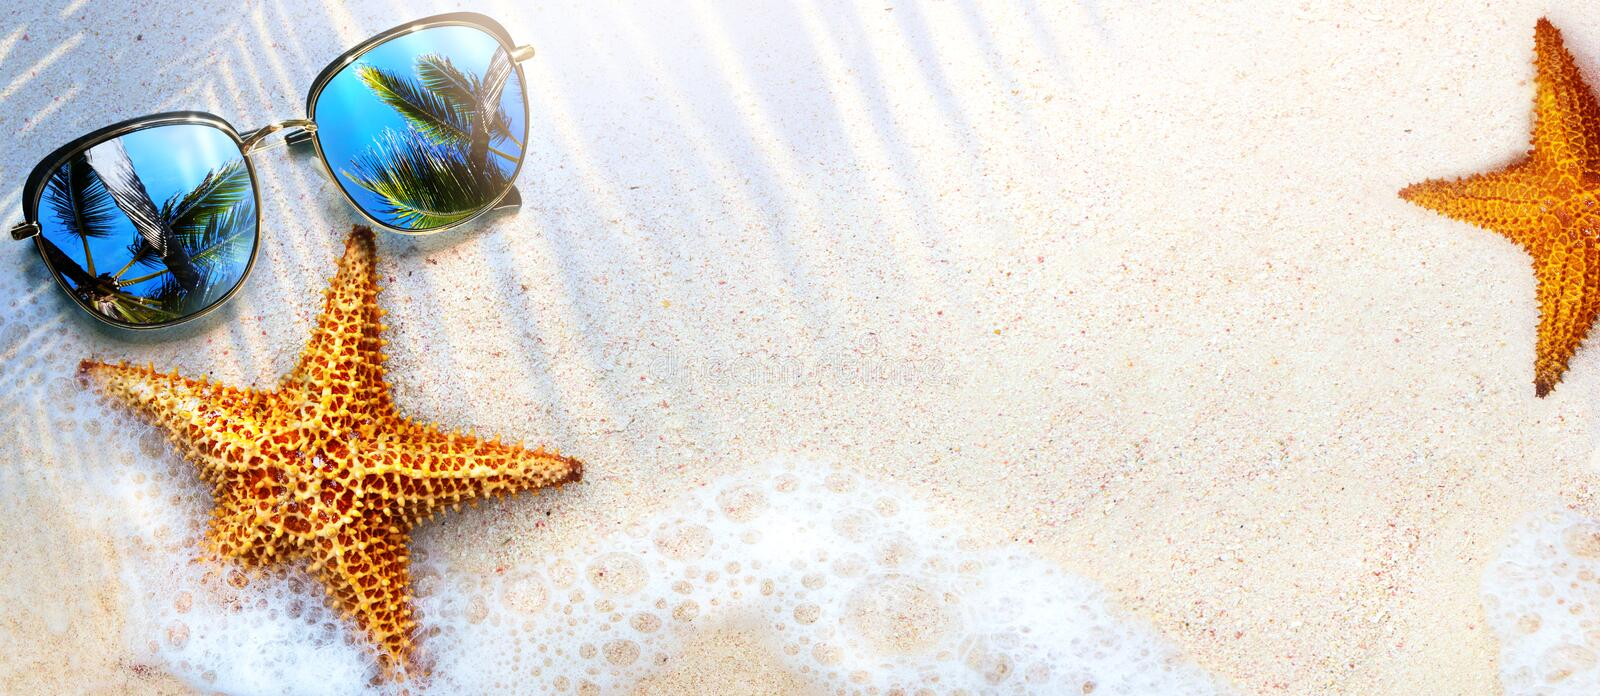 Art Summer Beach background with sunglass and starfish on sand; Tropical sea vacation concept royalty free stock images